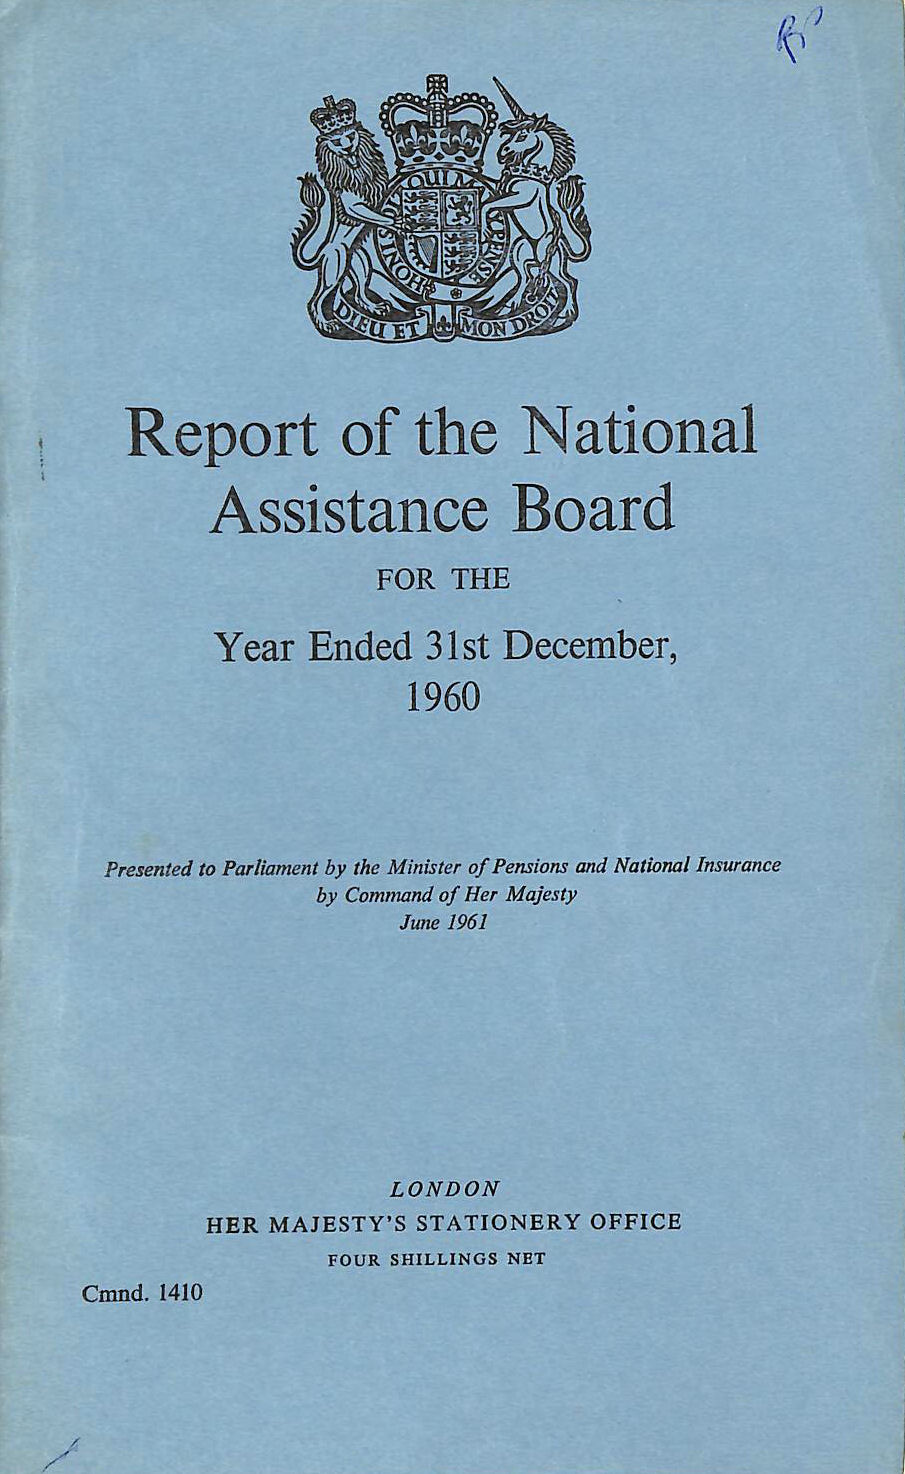 Image for Report of the National Assistance Board 1960